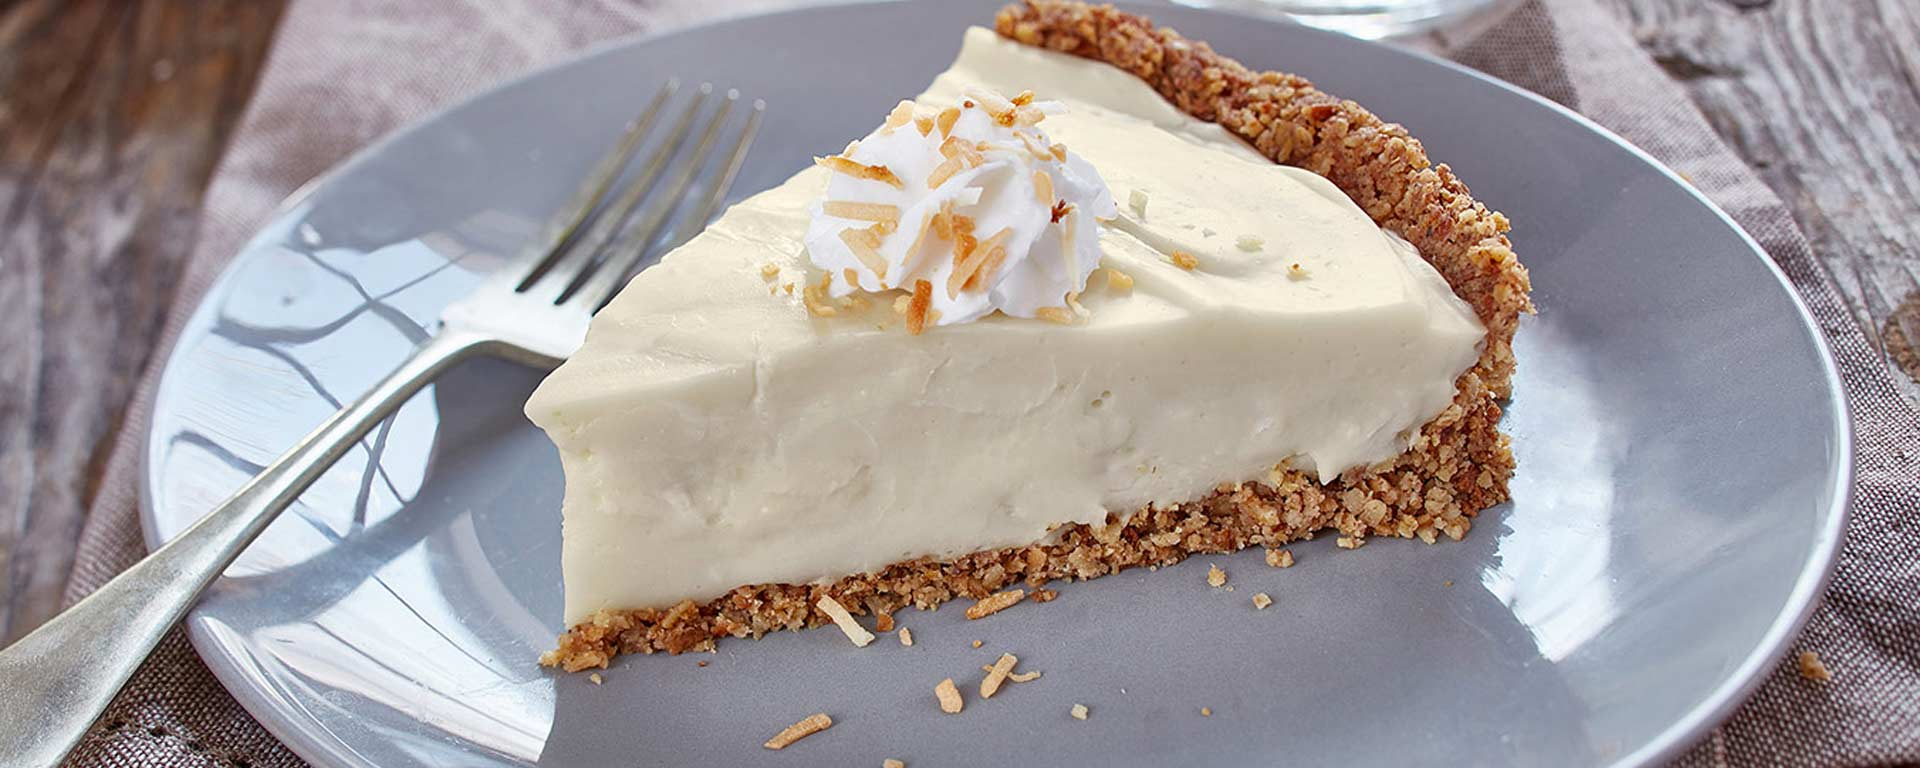 Photo for - Vegan Coconut Cream Pie